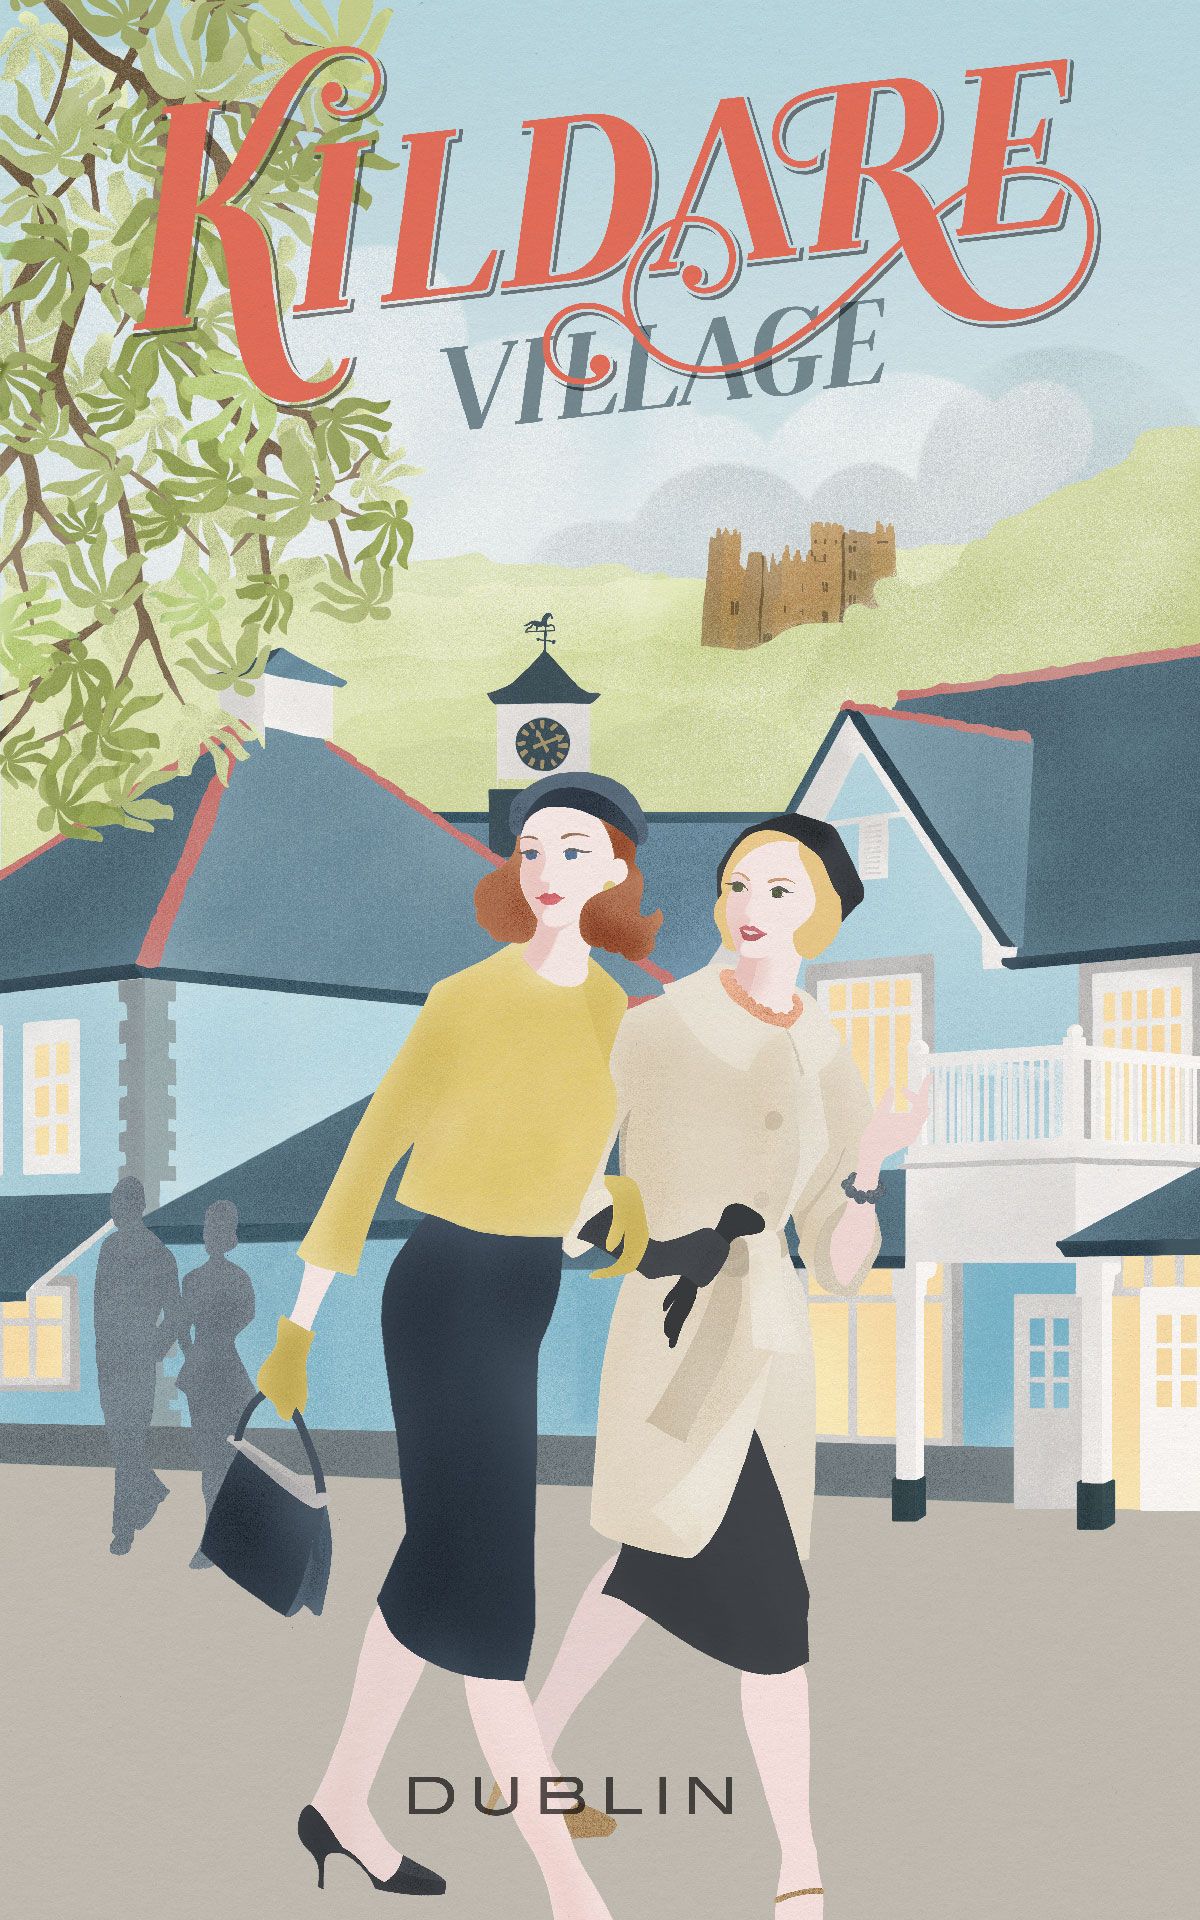 KILDARE VILLAGE TRAVEL POSTER WEB - VALUE RETAIL - THE TRAVEL POSTERS